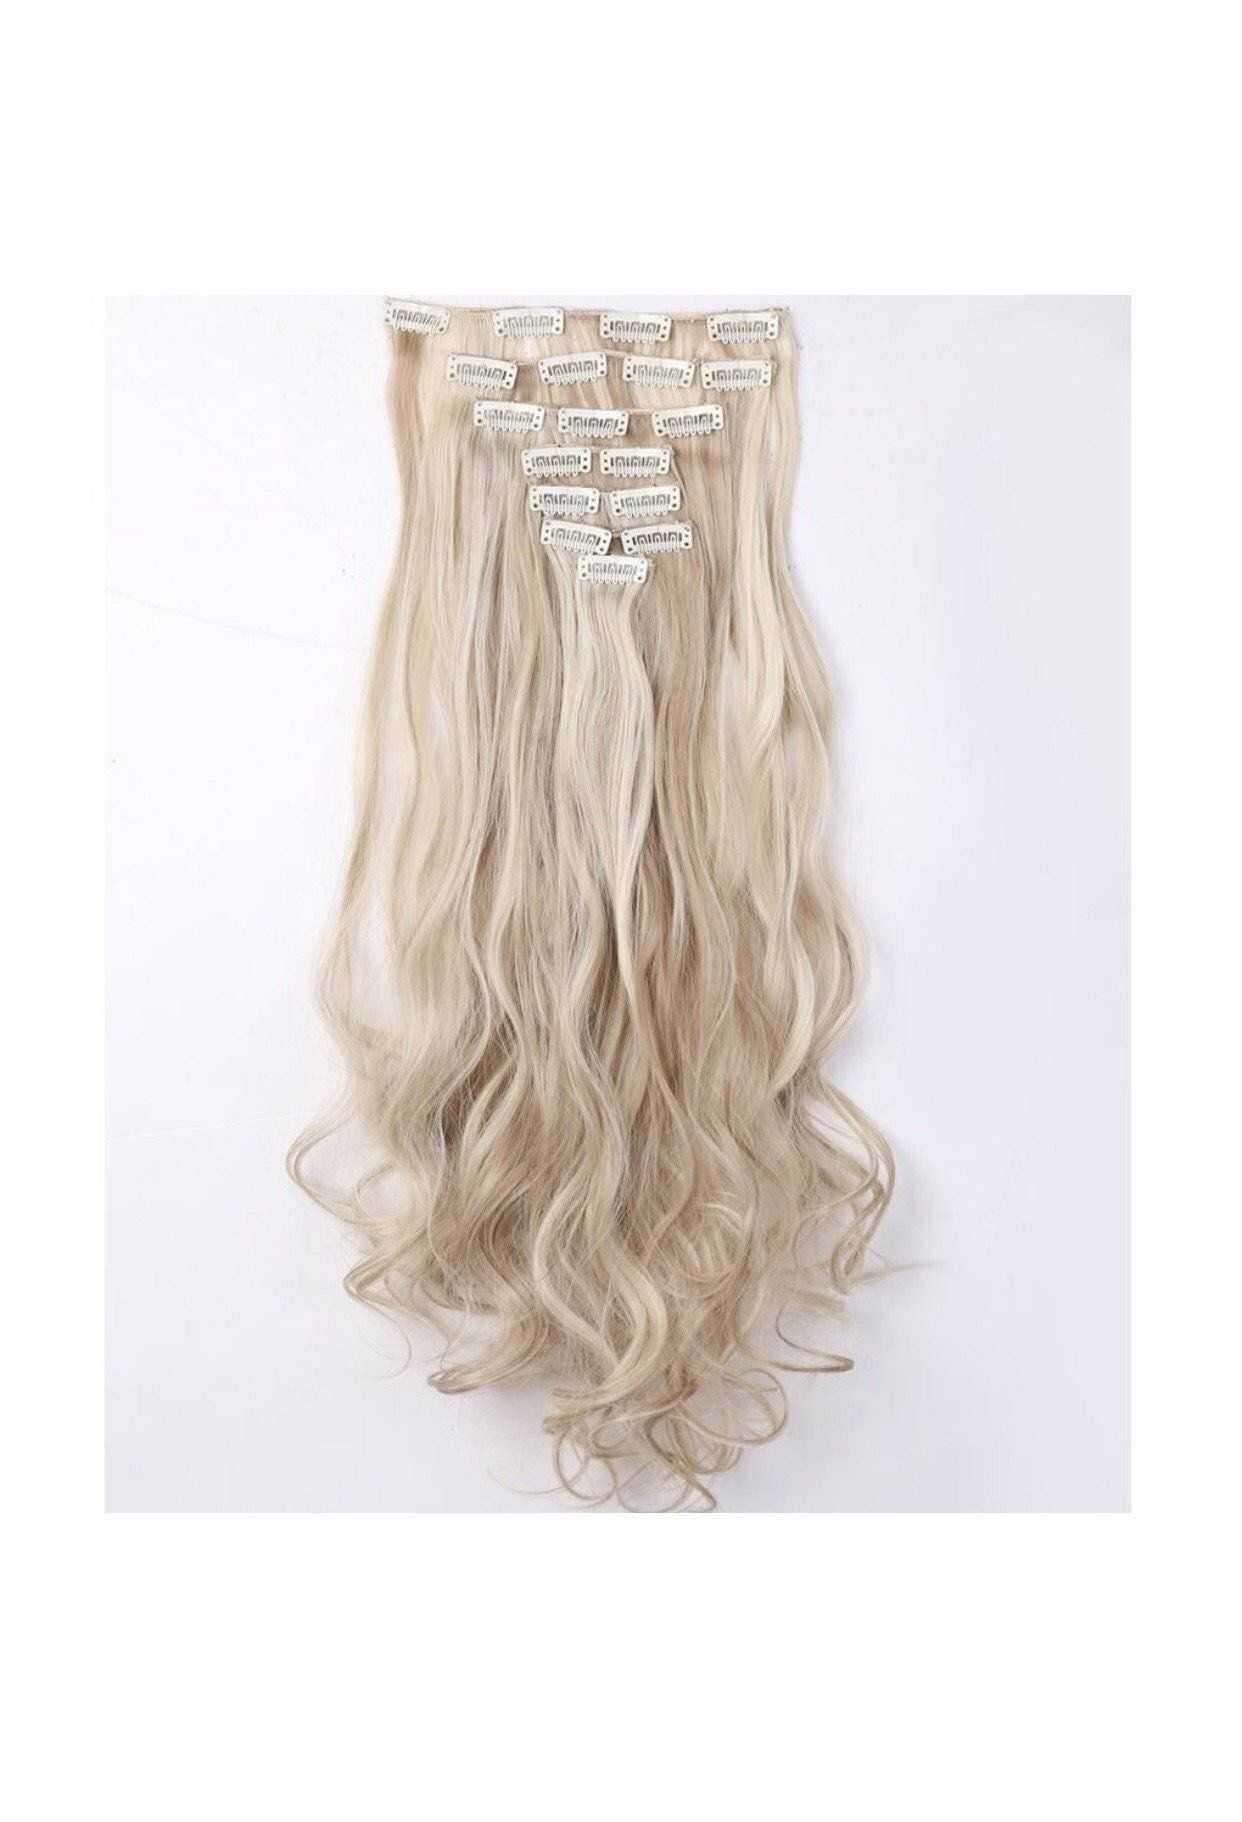 Ash Blonde Hair With Platinum Blonde Highlights Hair Extensions